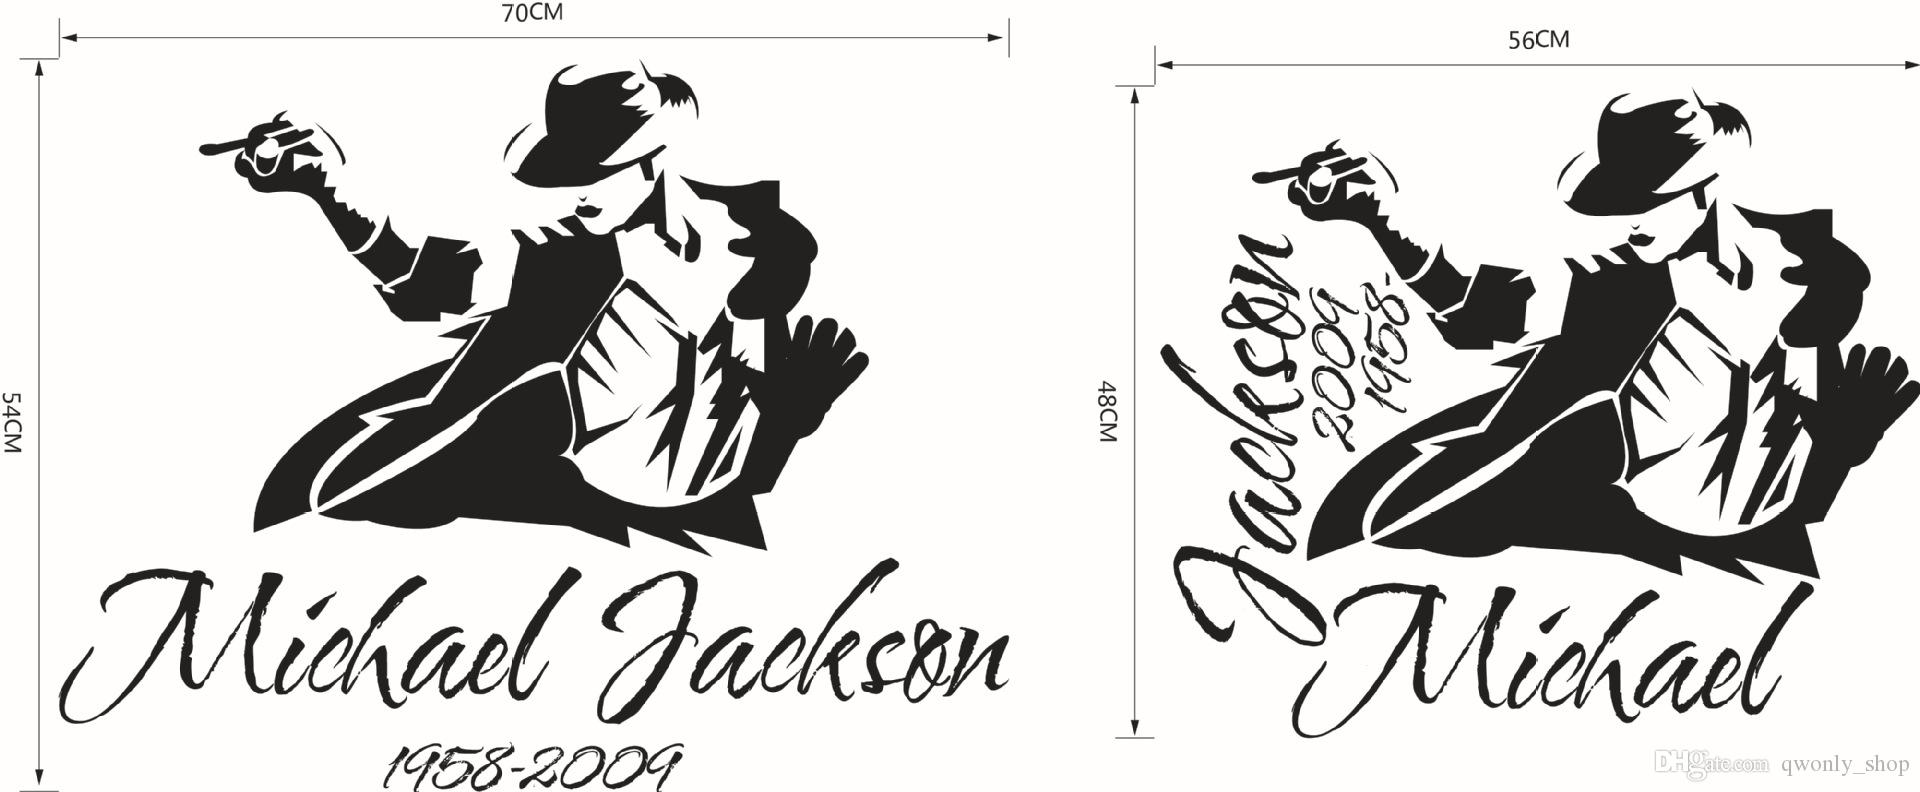 2017 Dancing Michael Jackson Wall Stickers Removable Vinyl Wall Decor Wall Decals Art Poster DIY Home Decor